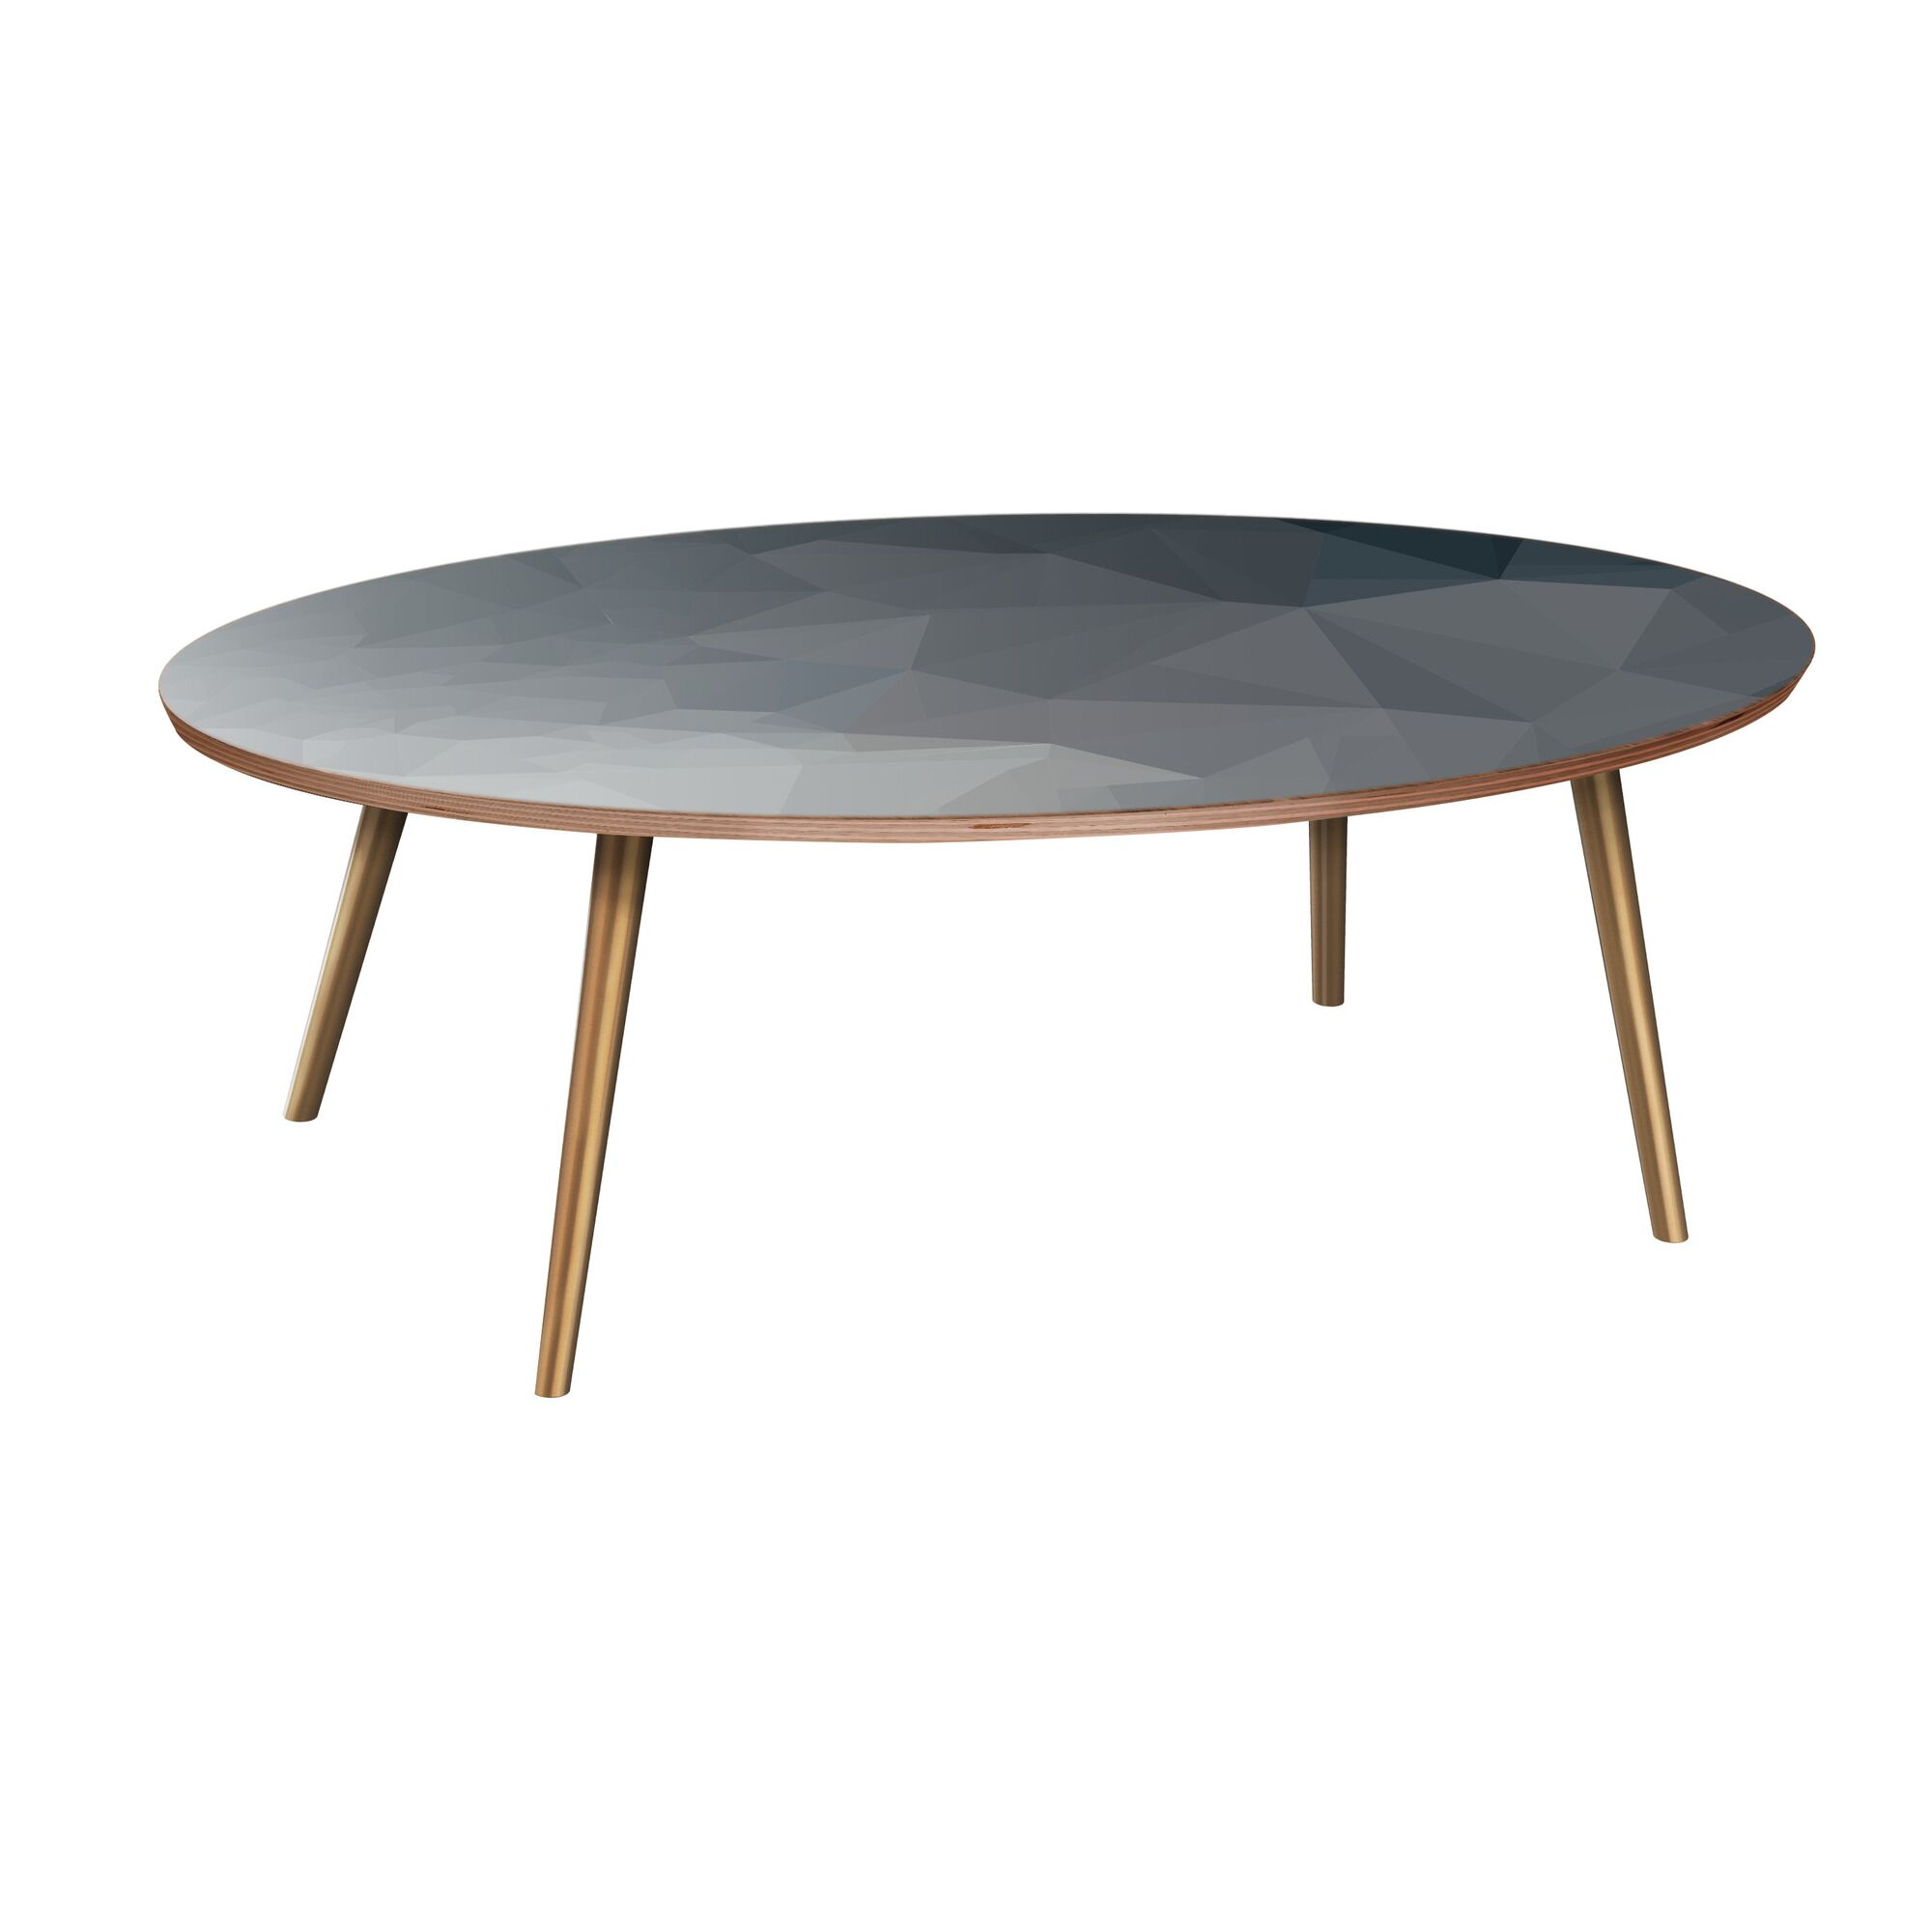 Henkle Coffee Table Table Base Color: Brass, Table Top Boarder Color: Walnut, Table Top Color: Blue